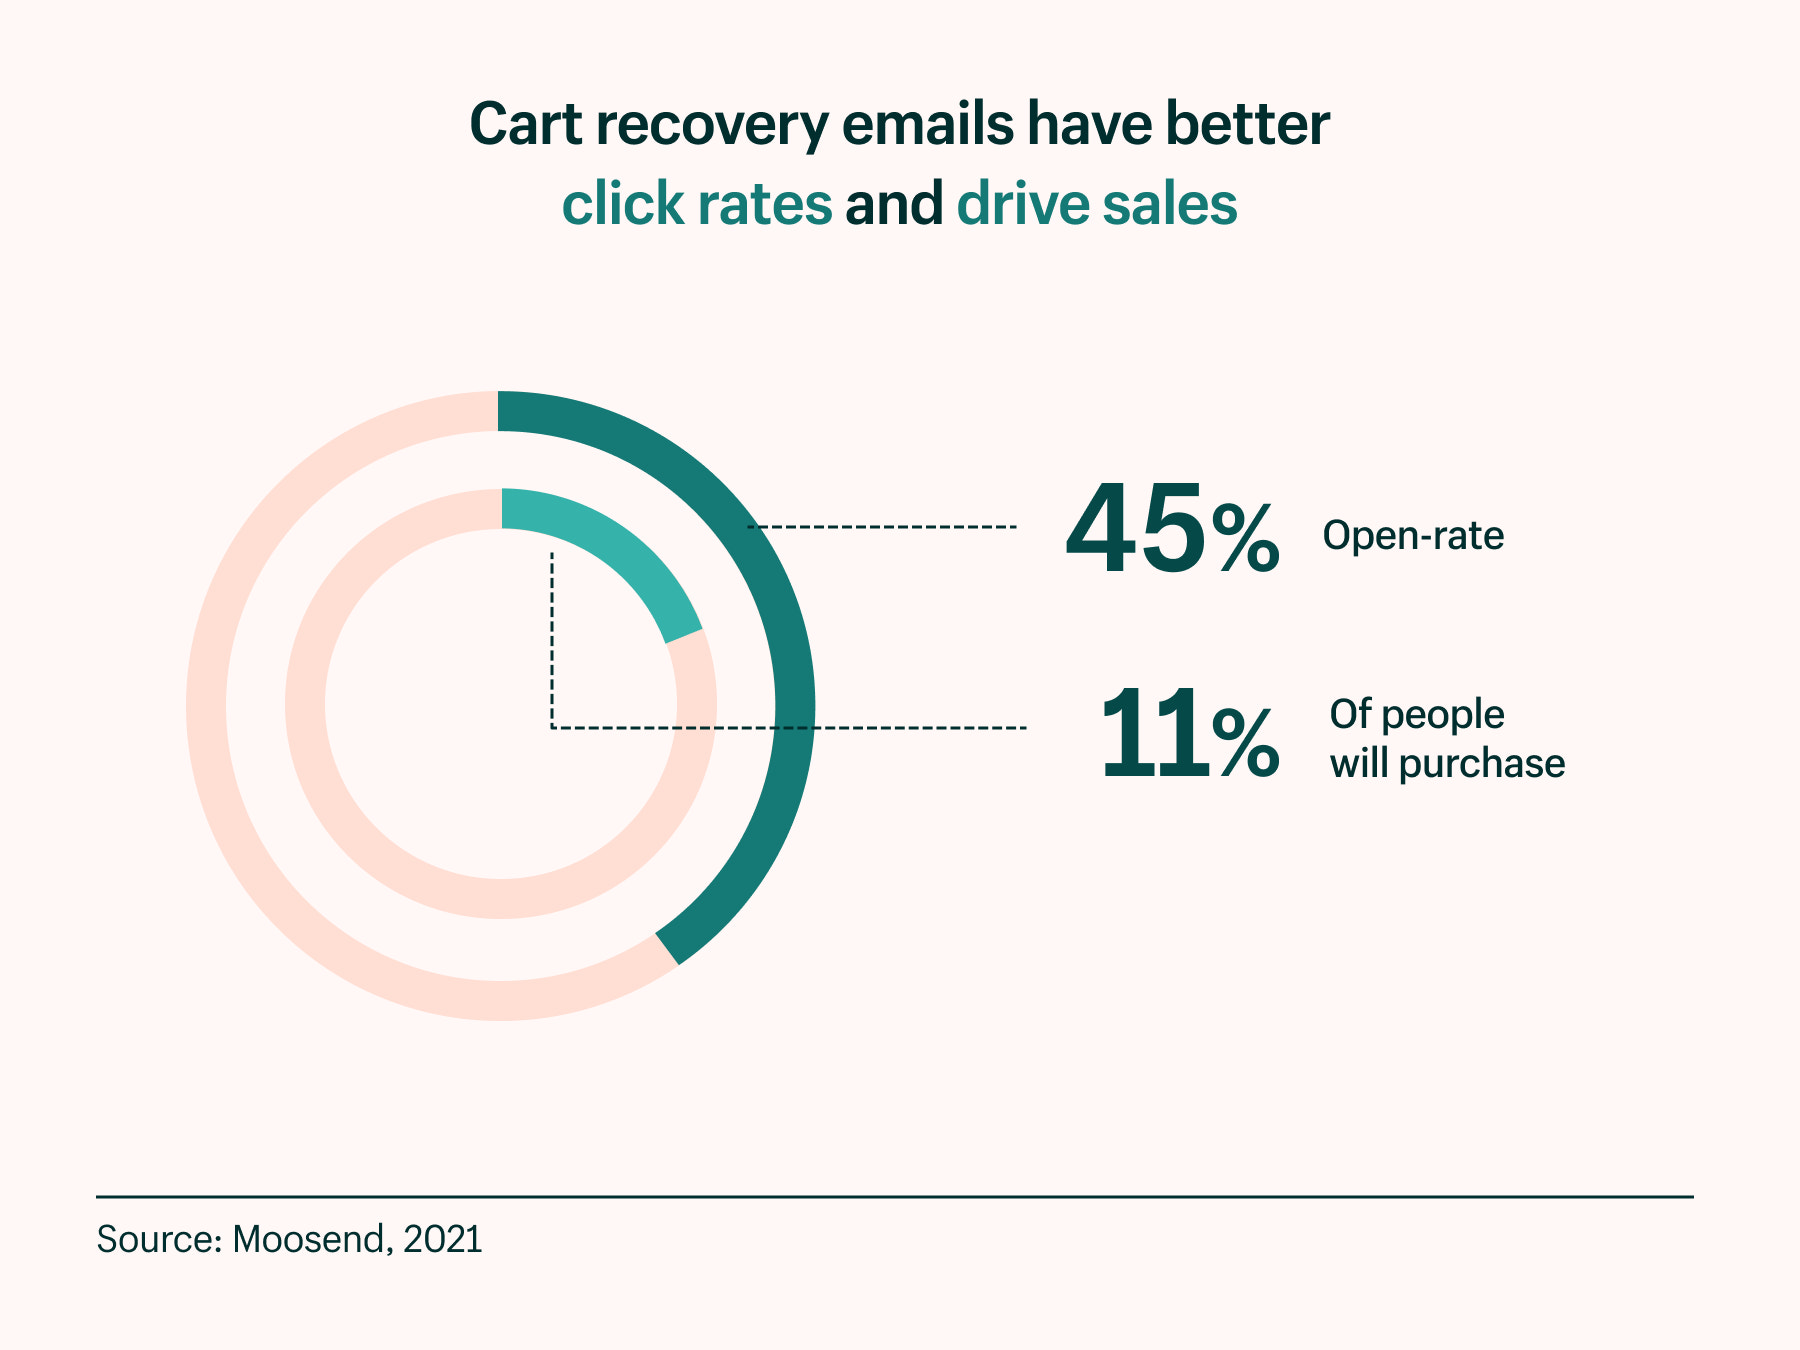 cart recovery emails have better click rates and drive sales